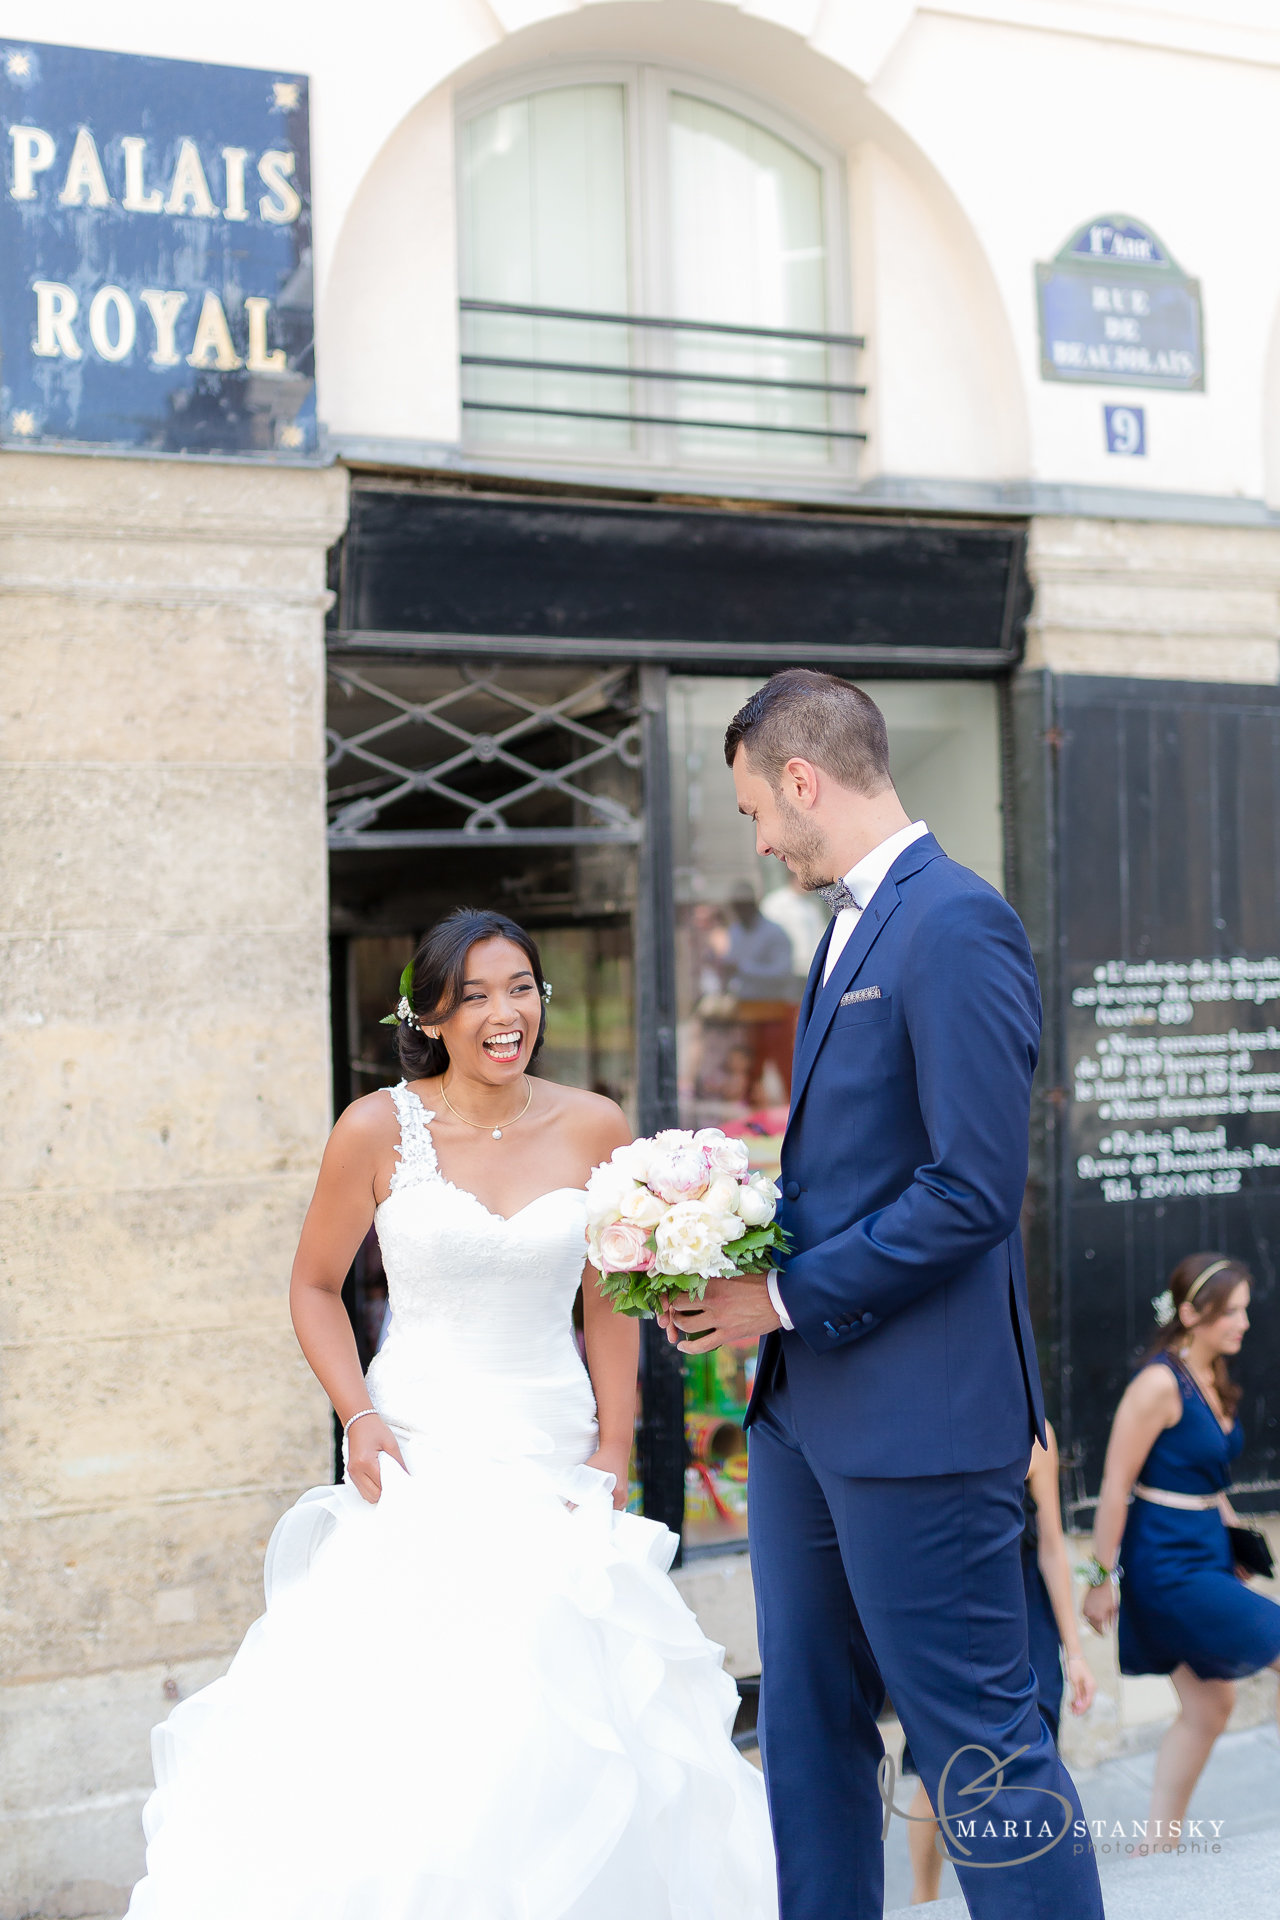 Mariage_Celine&Axel_11072015-0010